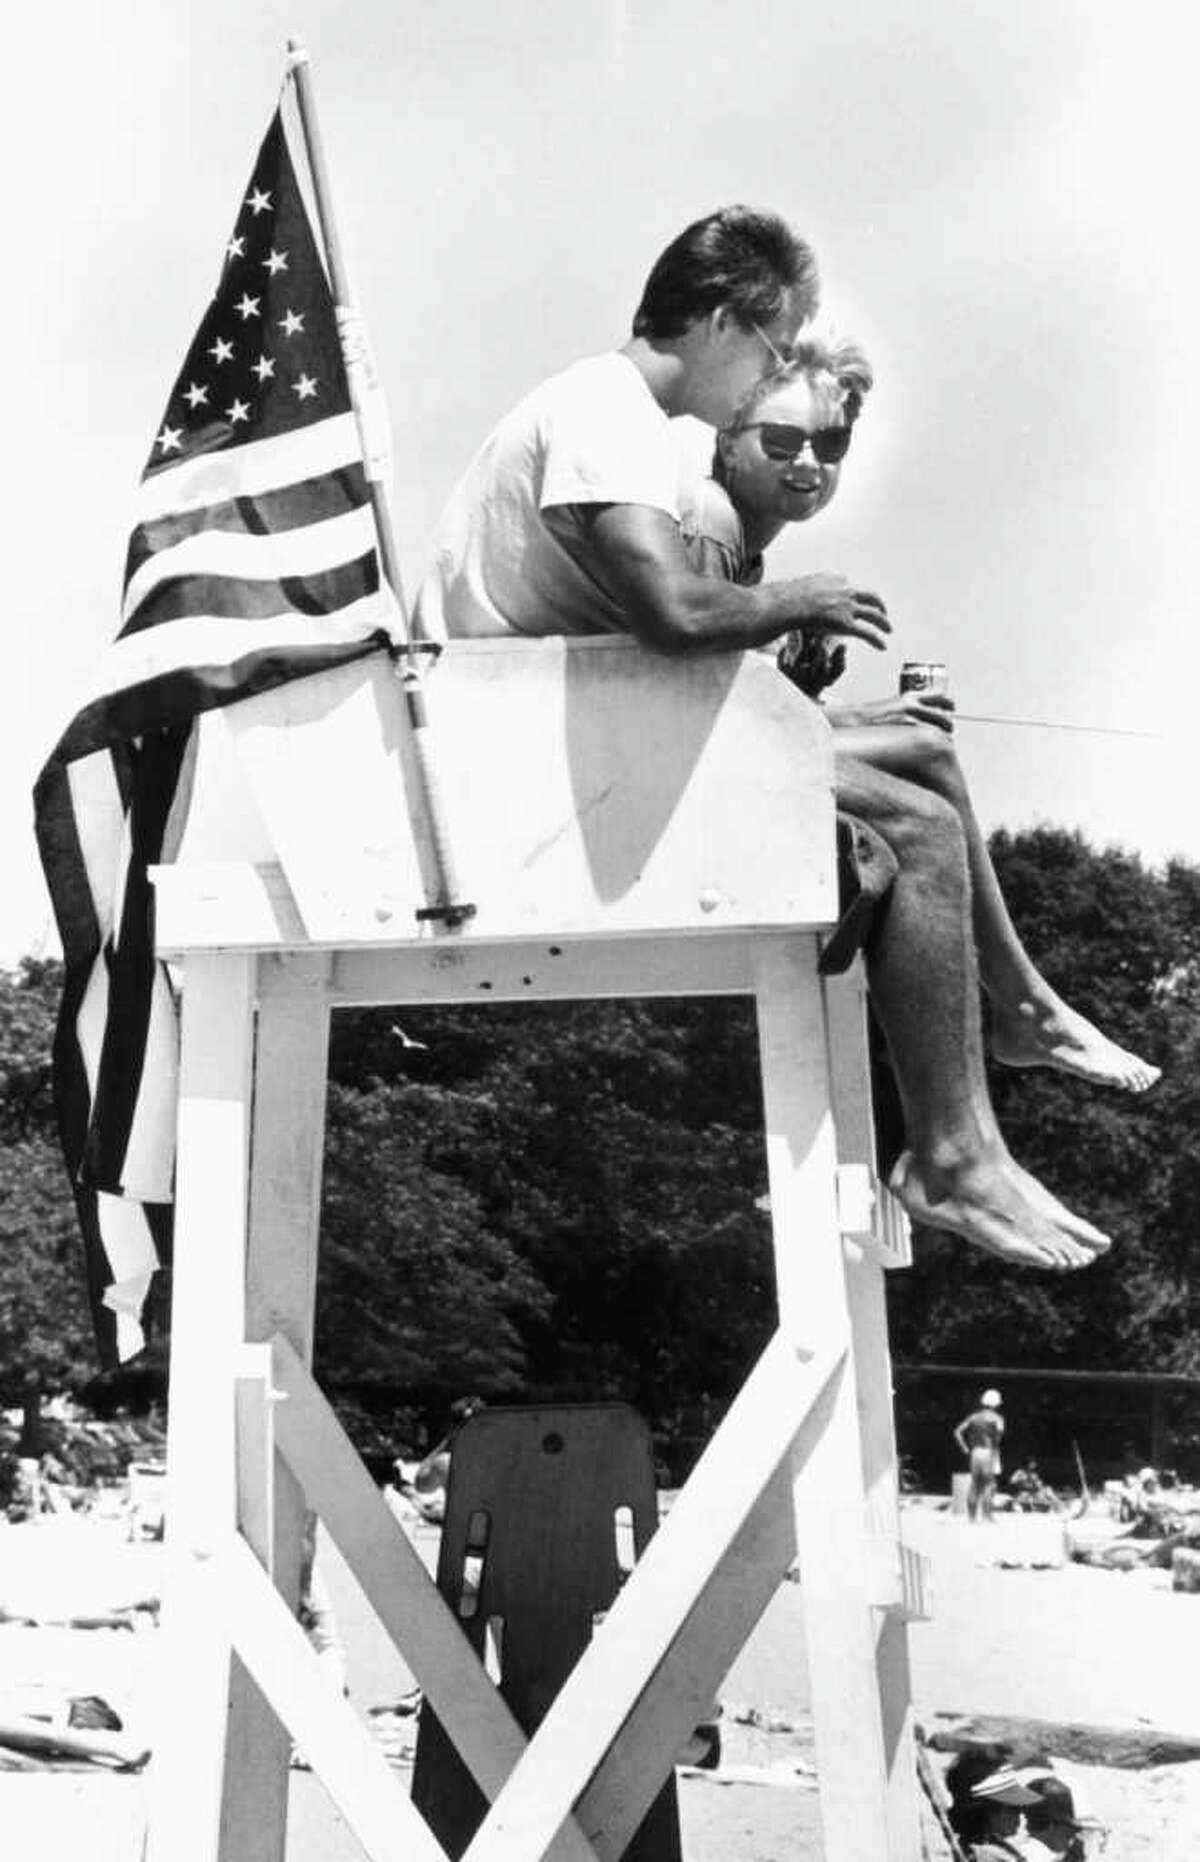 July 4, 1986: Doug Sciullo and Patty Denham, lifeguards at Cummings Park Beach, celebrate the day with Old Glory on their chair.